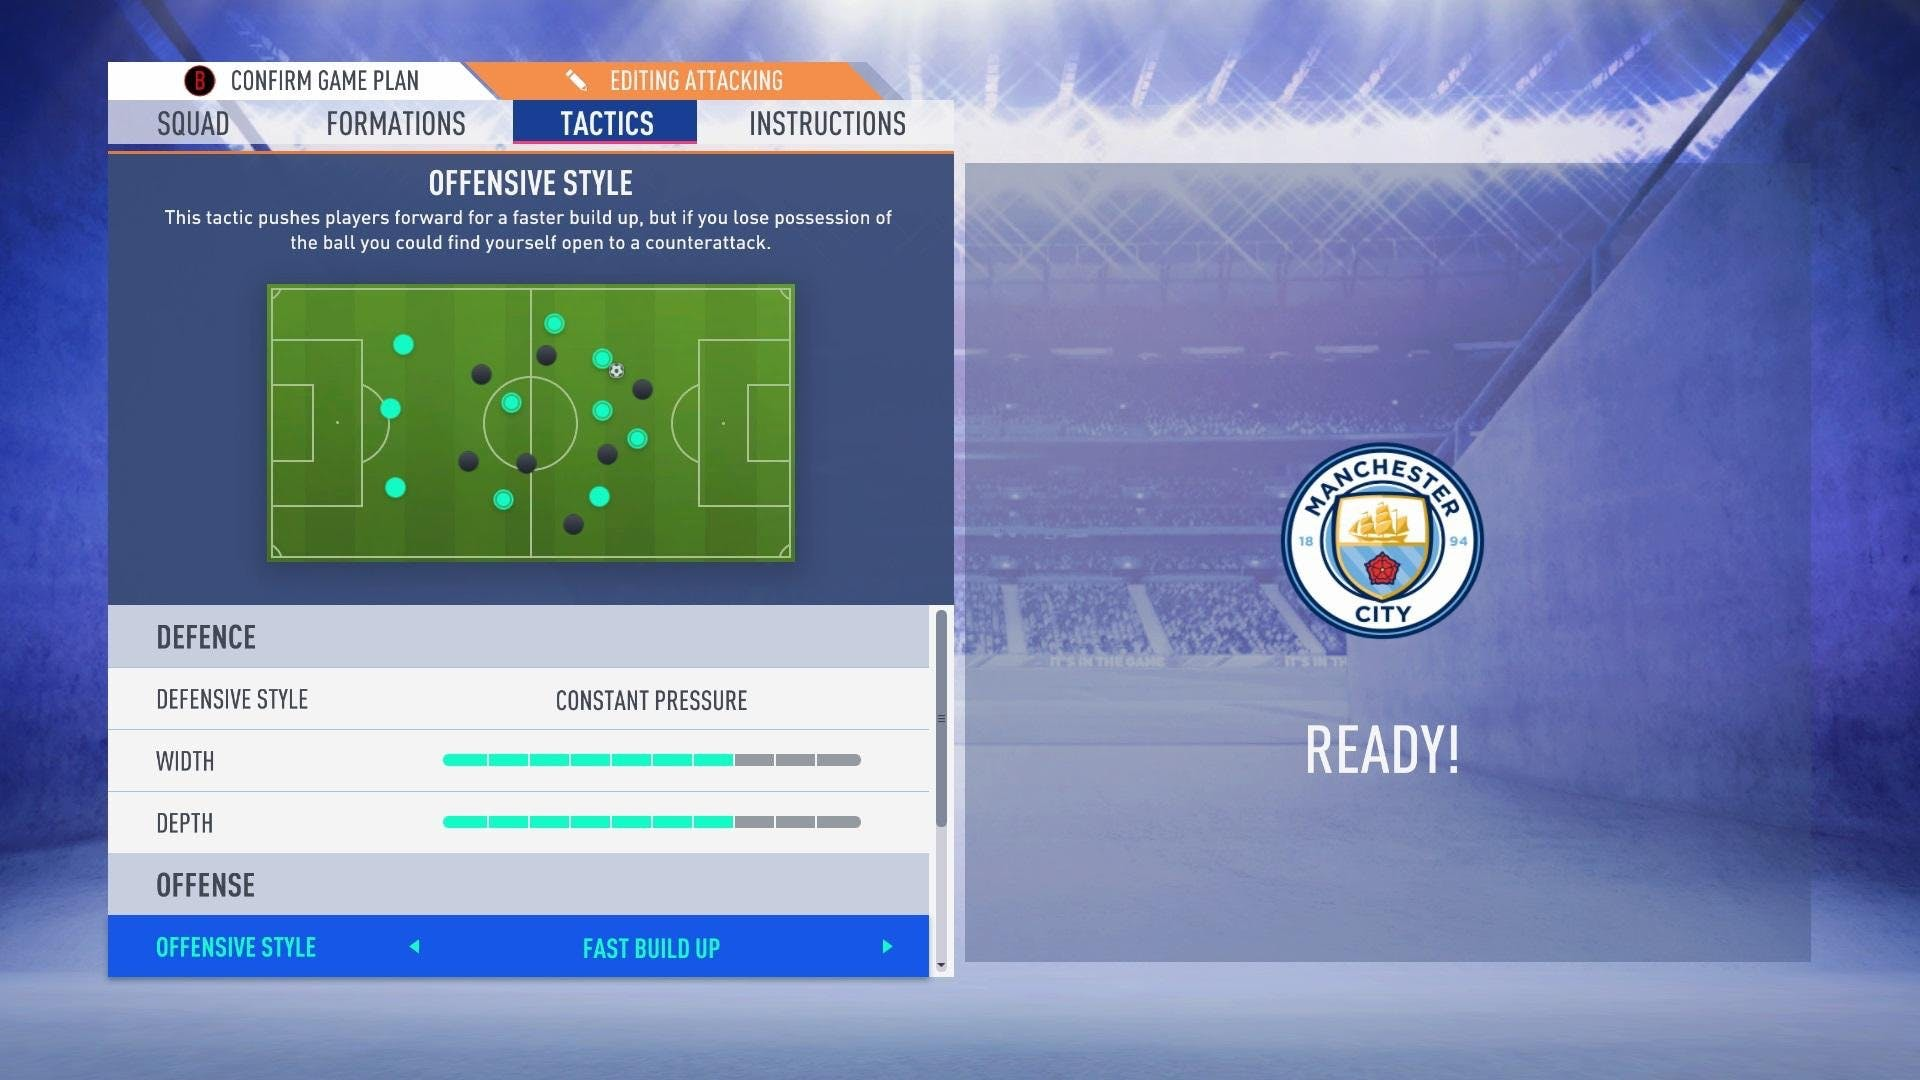 A FIFA tactics screen